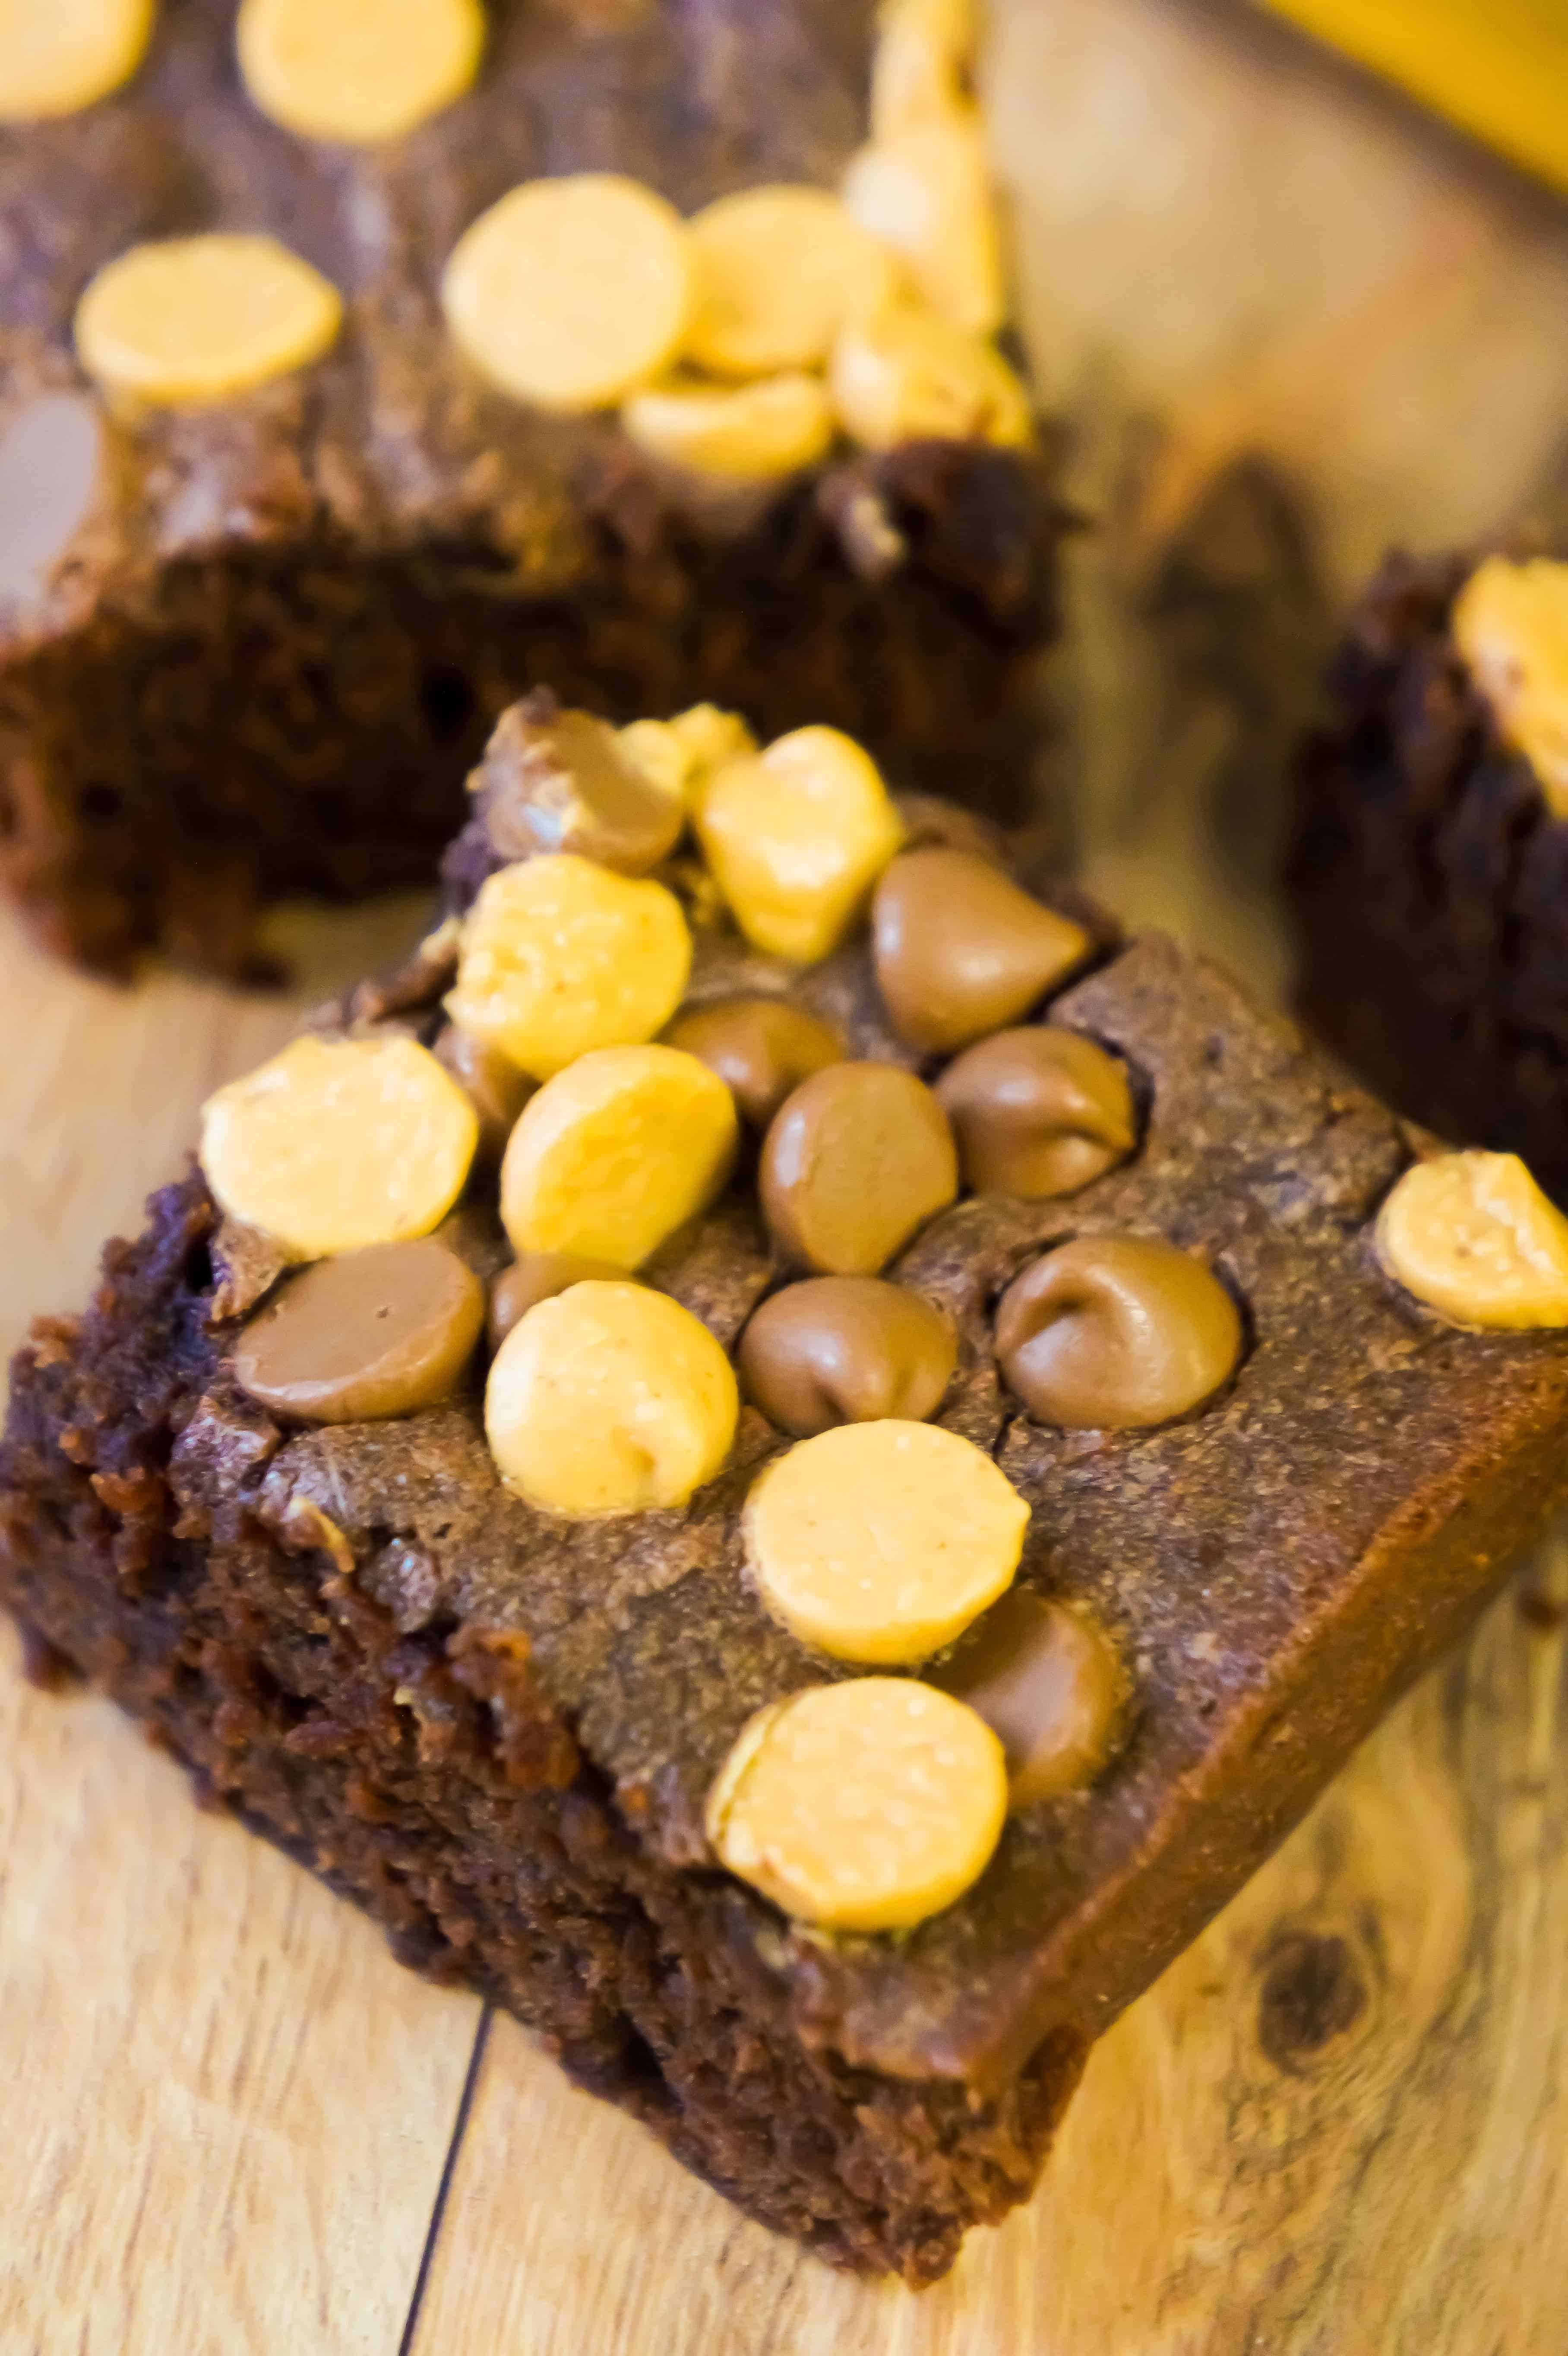 Peanut Butter Banana Brownies are an easy dessert recipe loaded with peanut butter and chocolate chips.